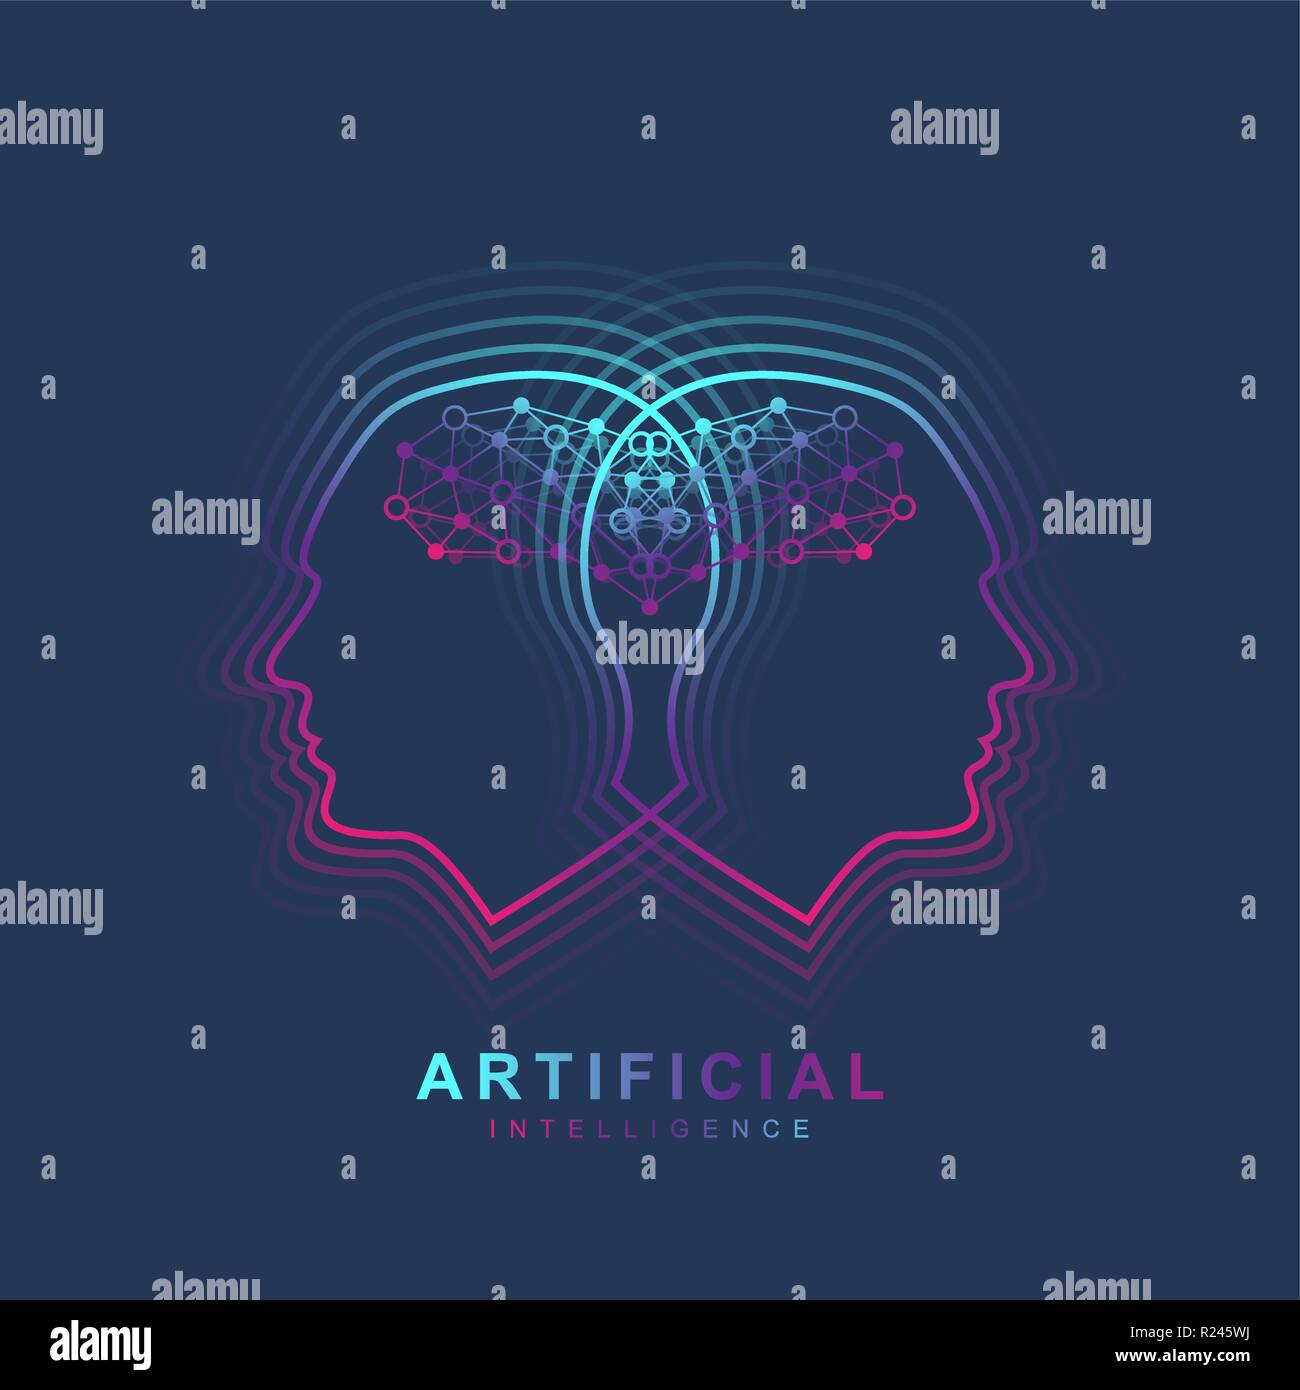 Artificial Intelligence Logo. Artificial Intelligence and Machine Learning Concept. Vector symbol AI. Neural networks and another modern technologies concepts. Technology sci-fi concept. Stock Vector